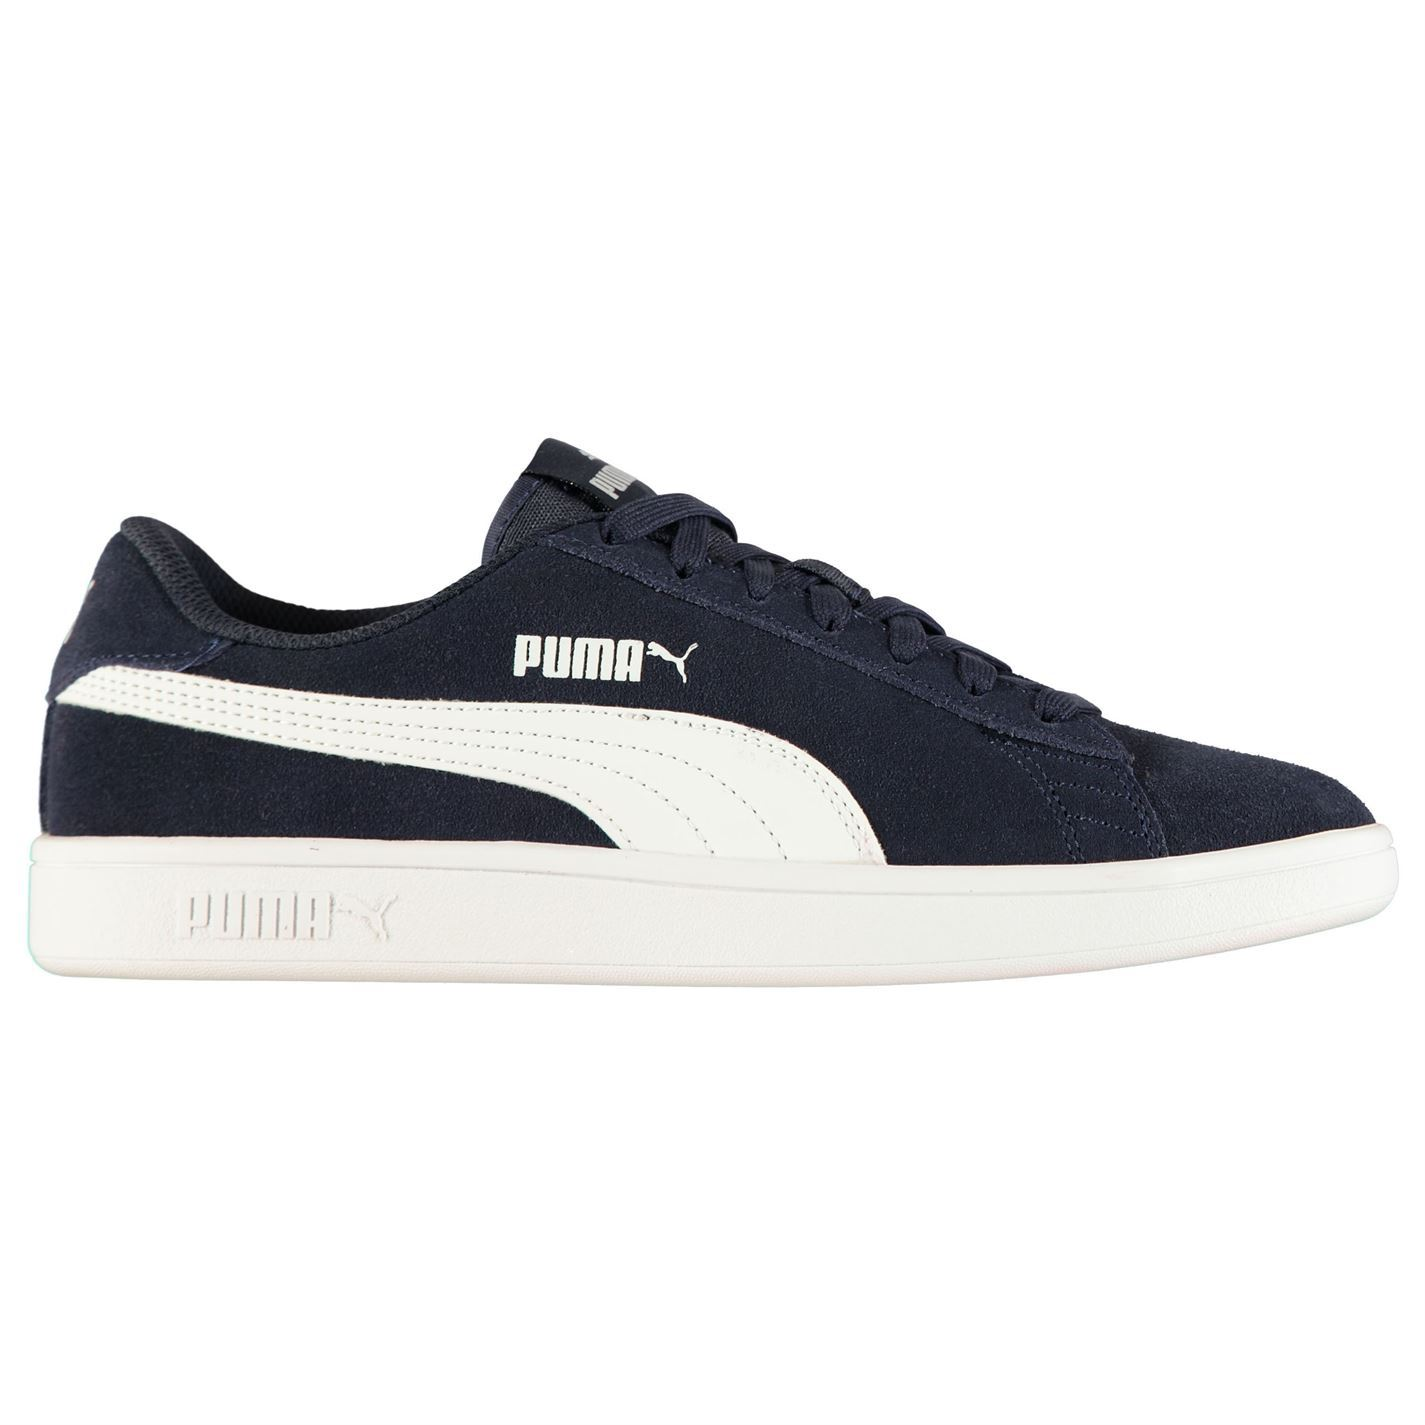 Puma-Smash-V2-Suede-Trainers-Mens-Shoes-Sneakers-Athleisure-Footwear thumbnail 9